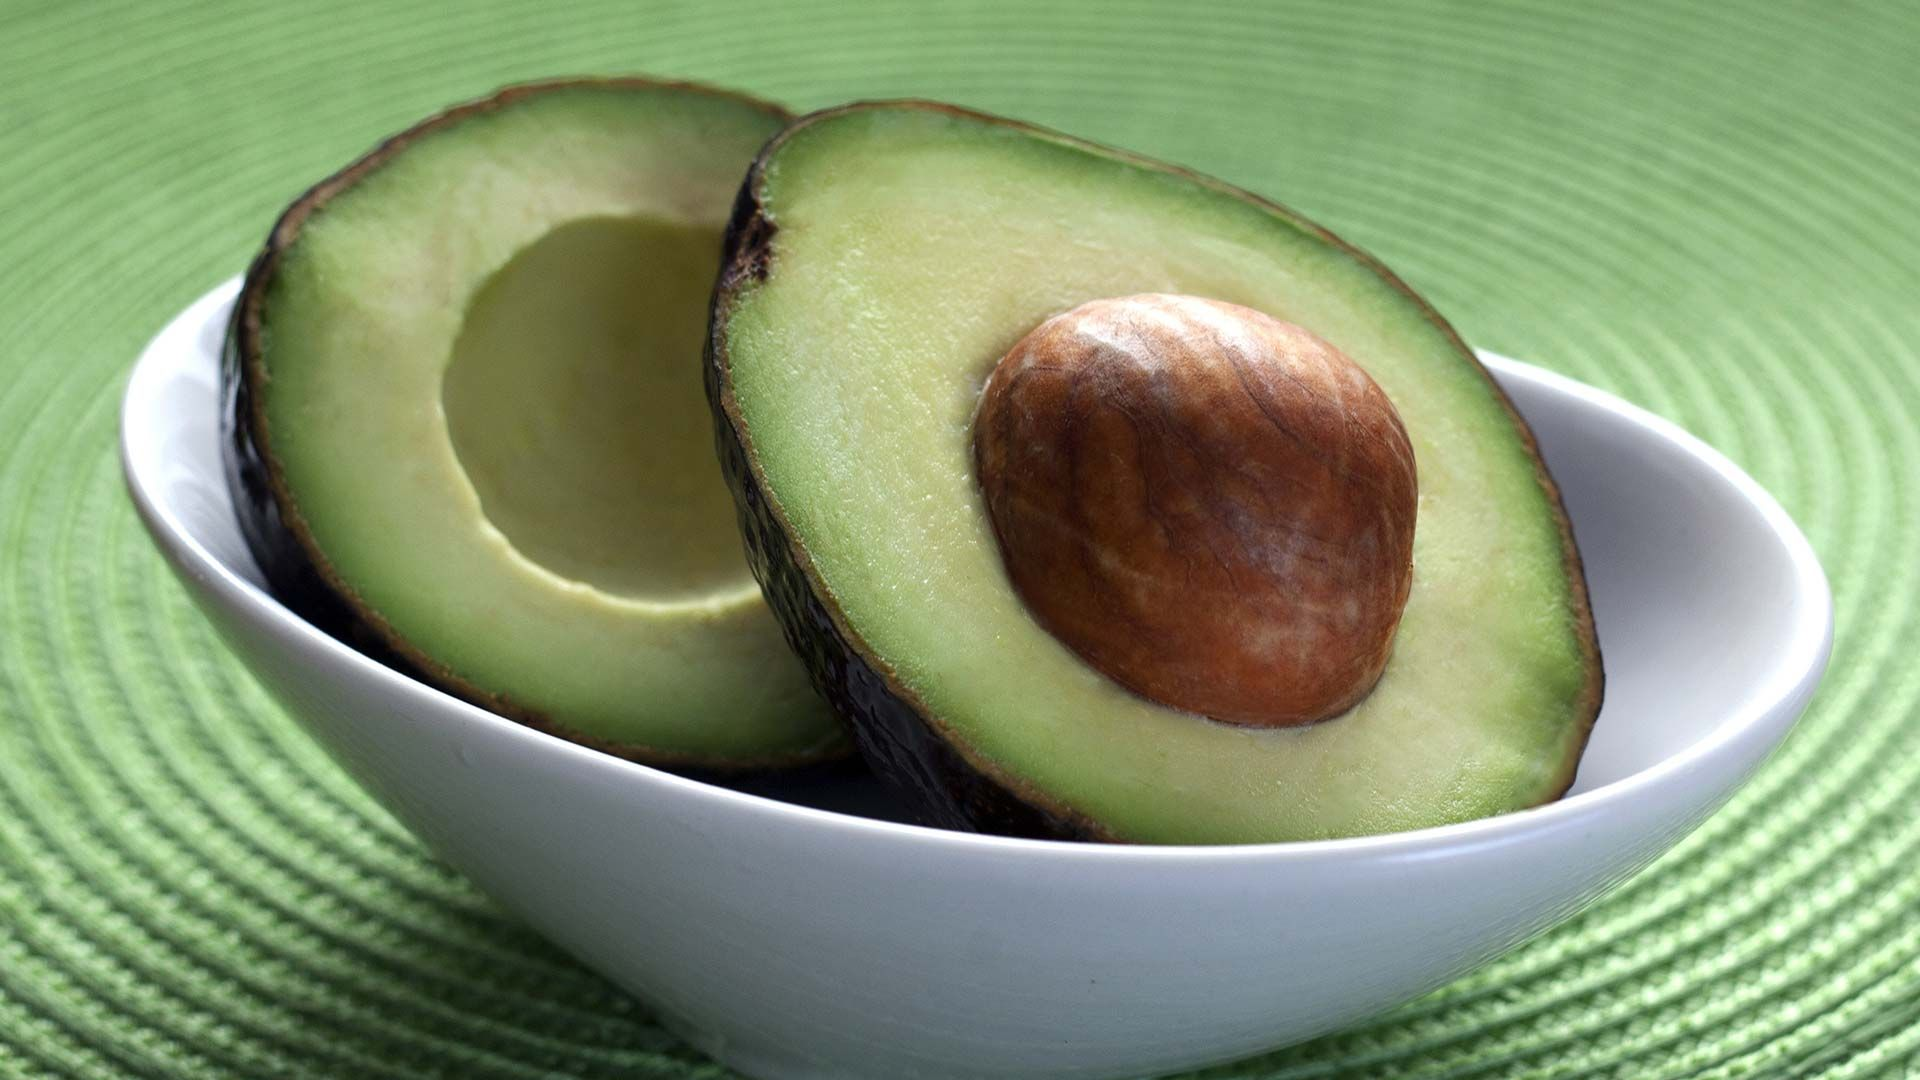 Avocado download wallpaper image